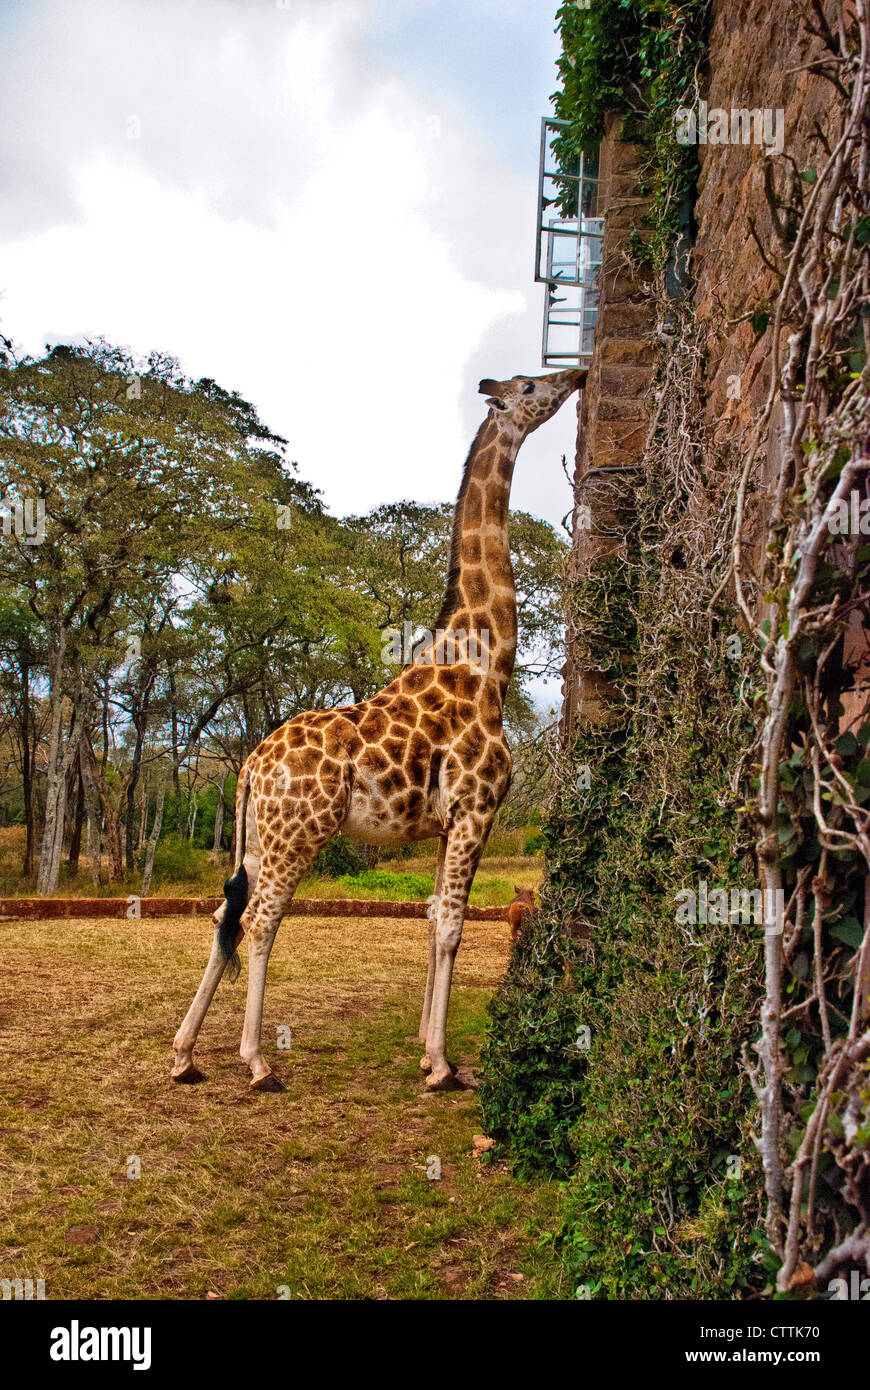 Rothschild or Baringo Giraffe, Giraffa camelopardalis rothschild, being fed at a window of Giraffe Manor, Nairobi, - Stock Image